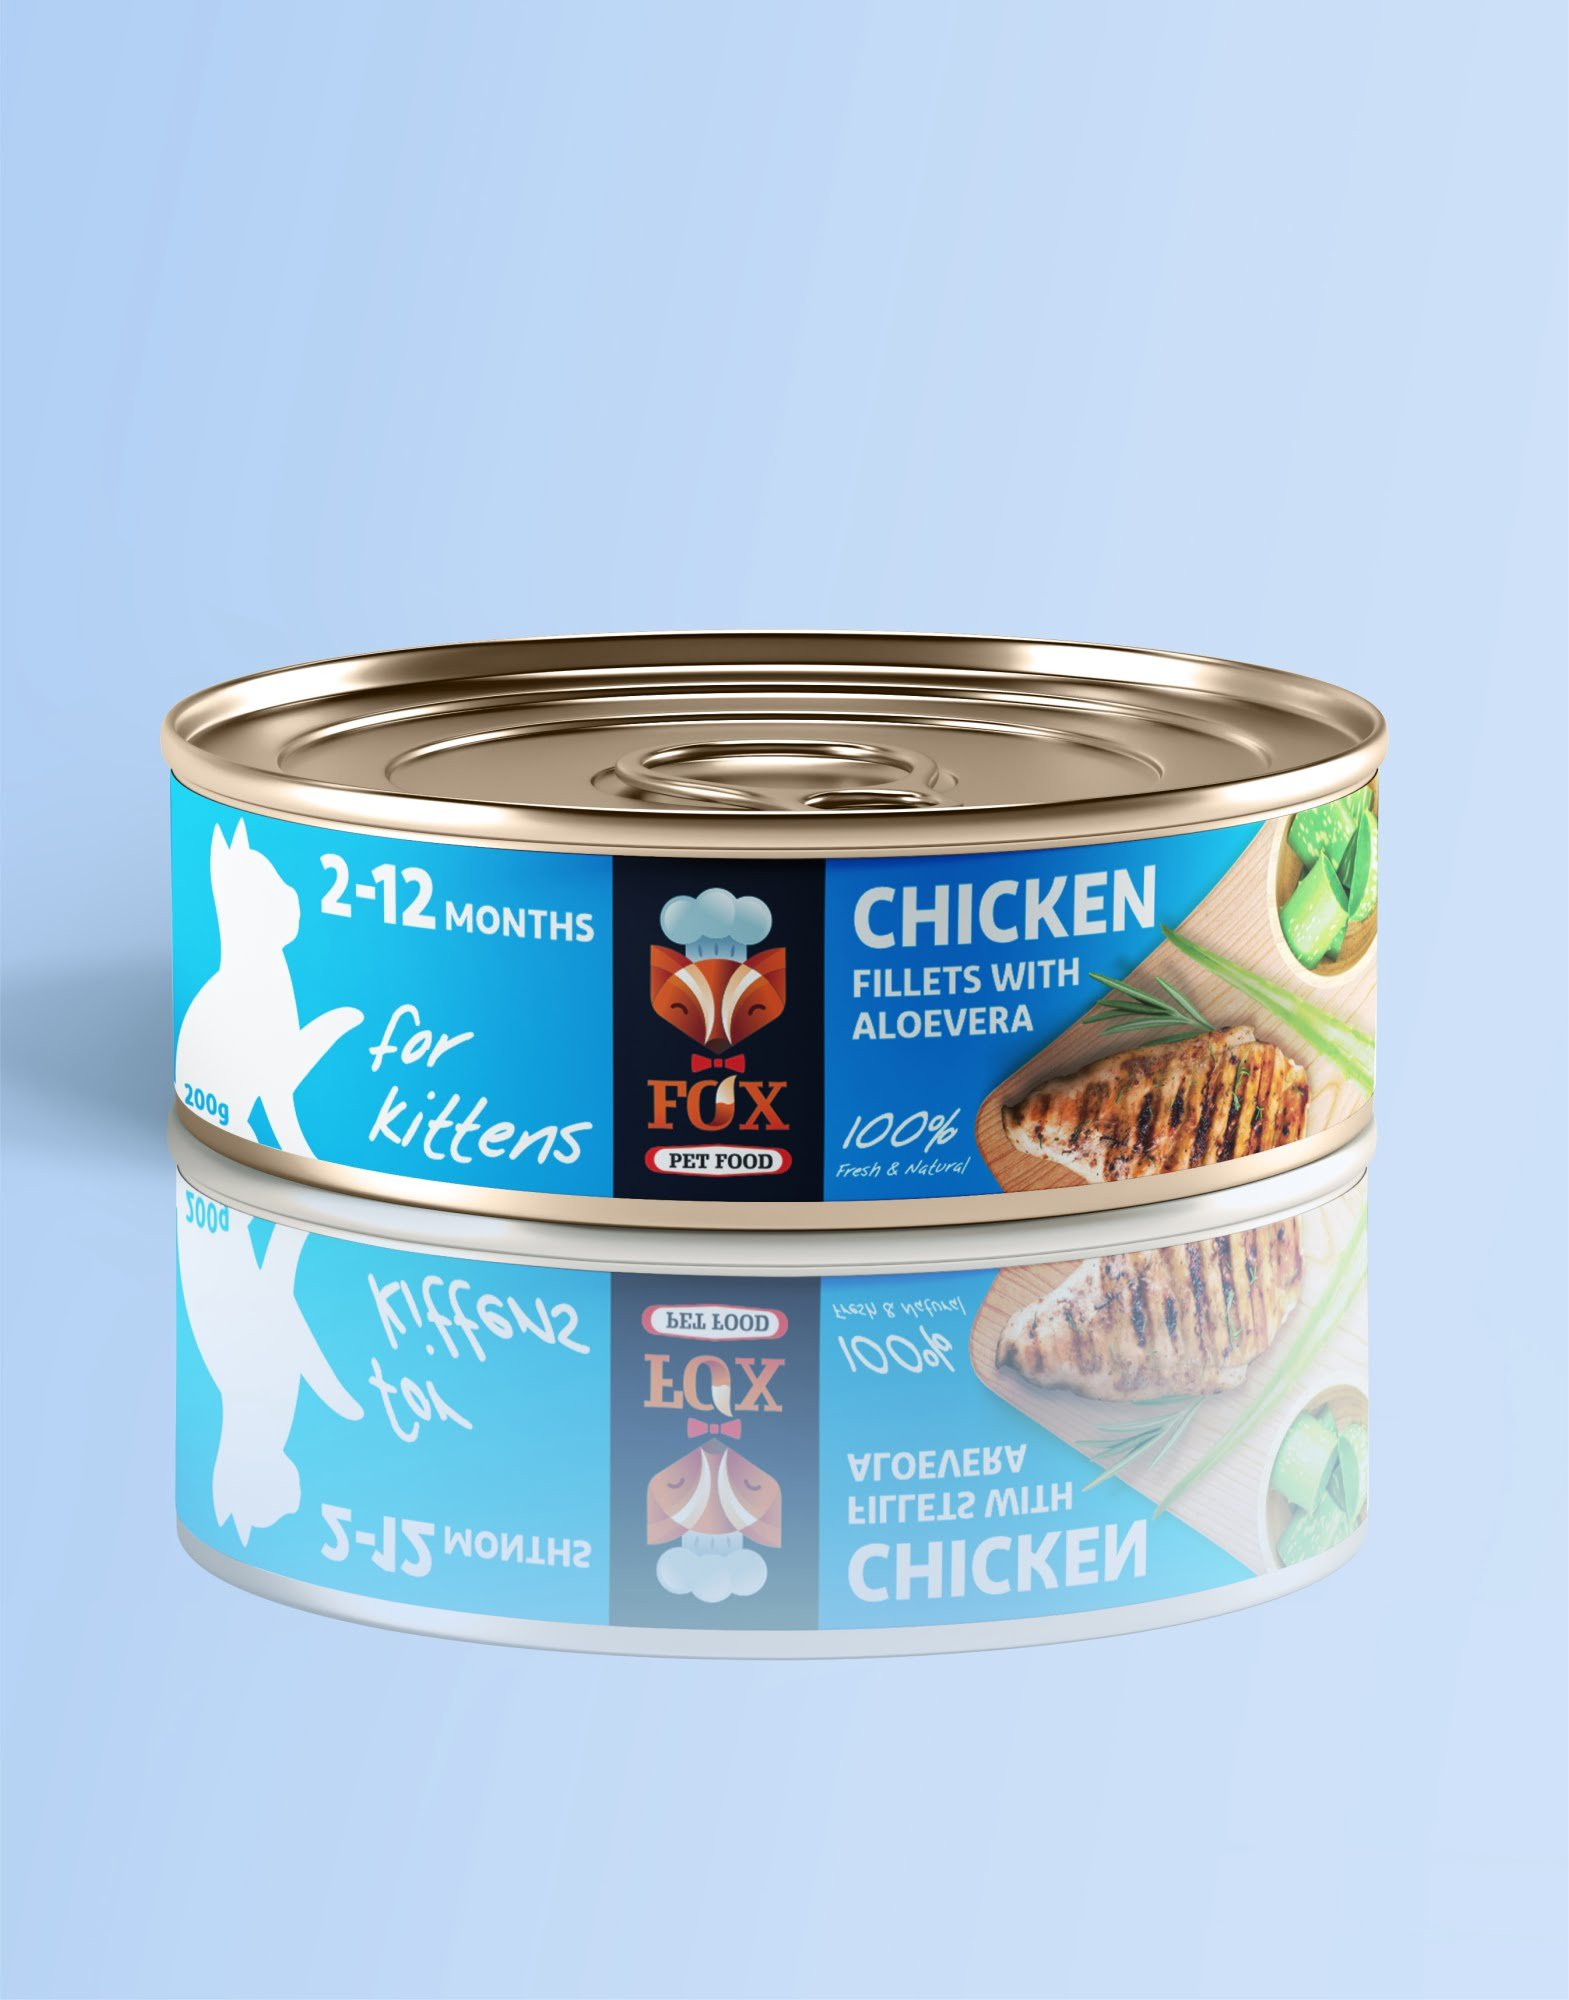 chicken fillets with aloe vera-tin-200g-for kittens-front